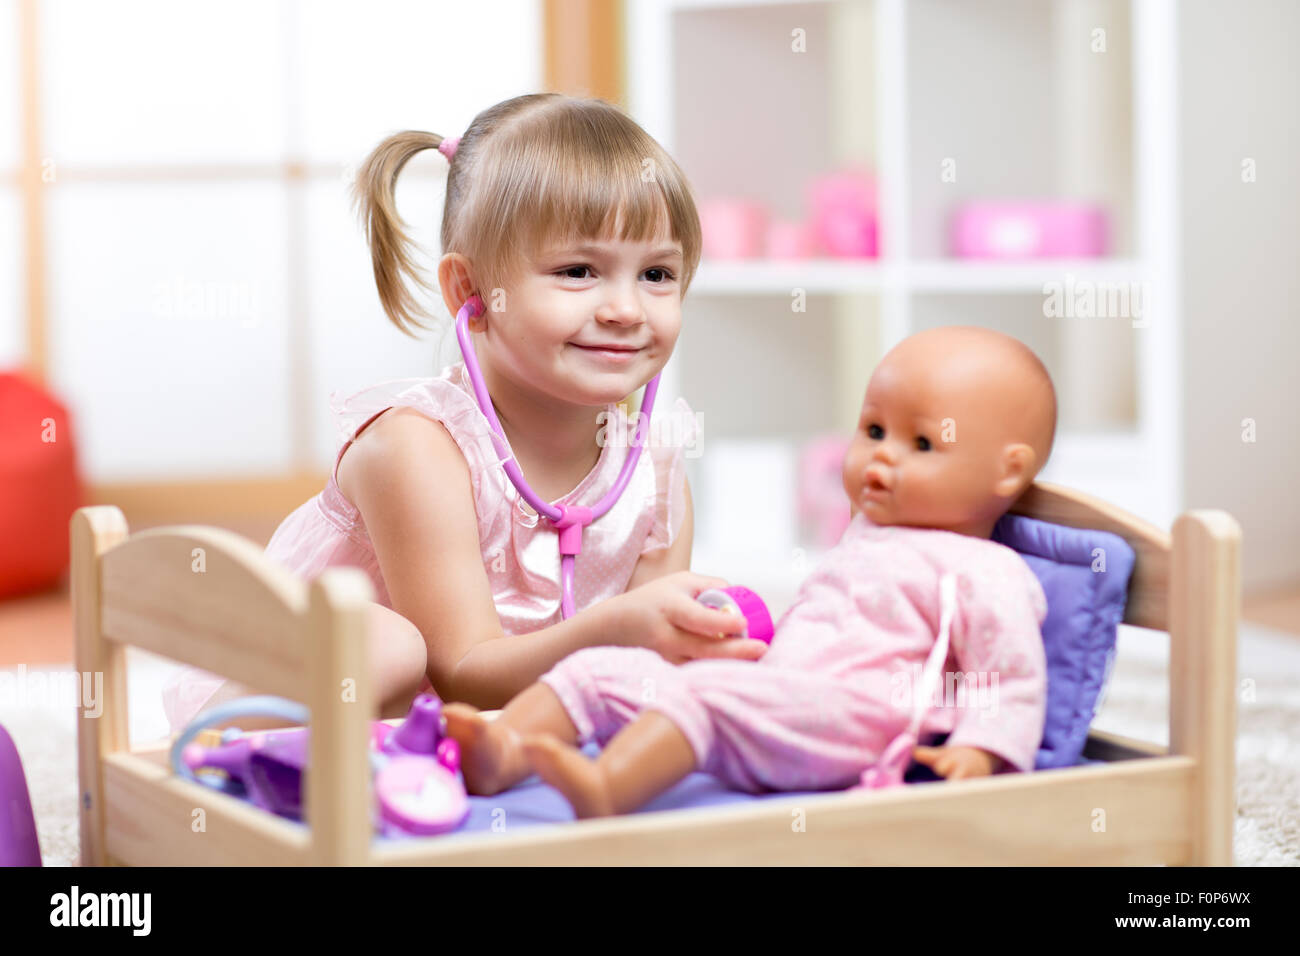 Child Playing Doctor with doll Toy - Stock Image